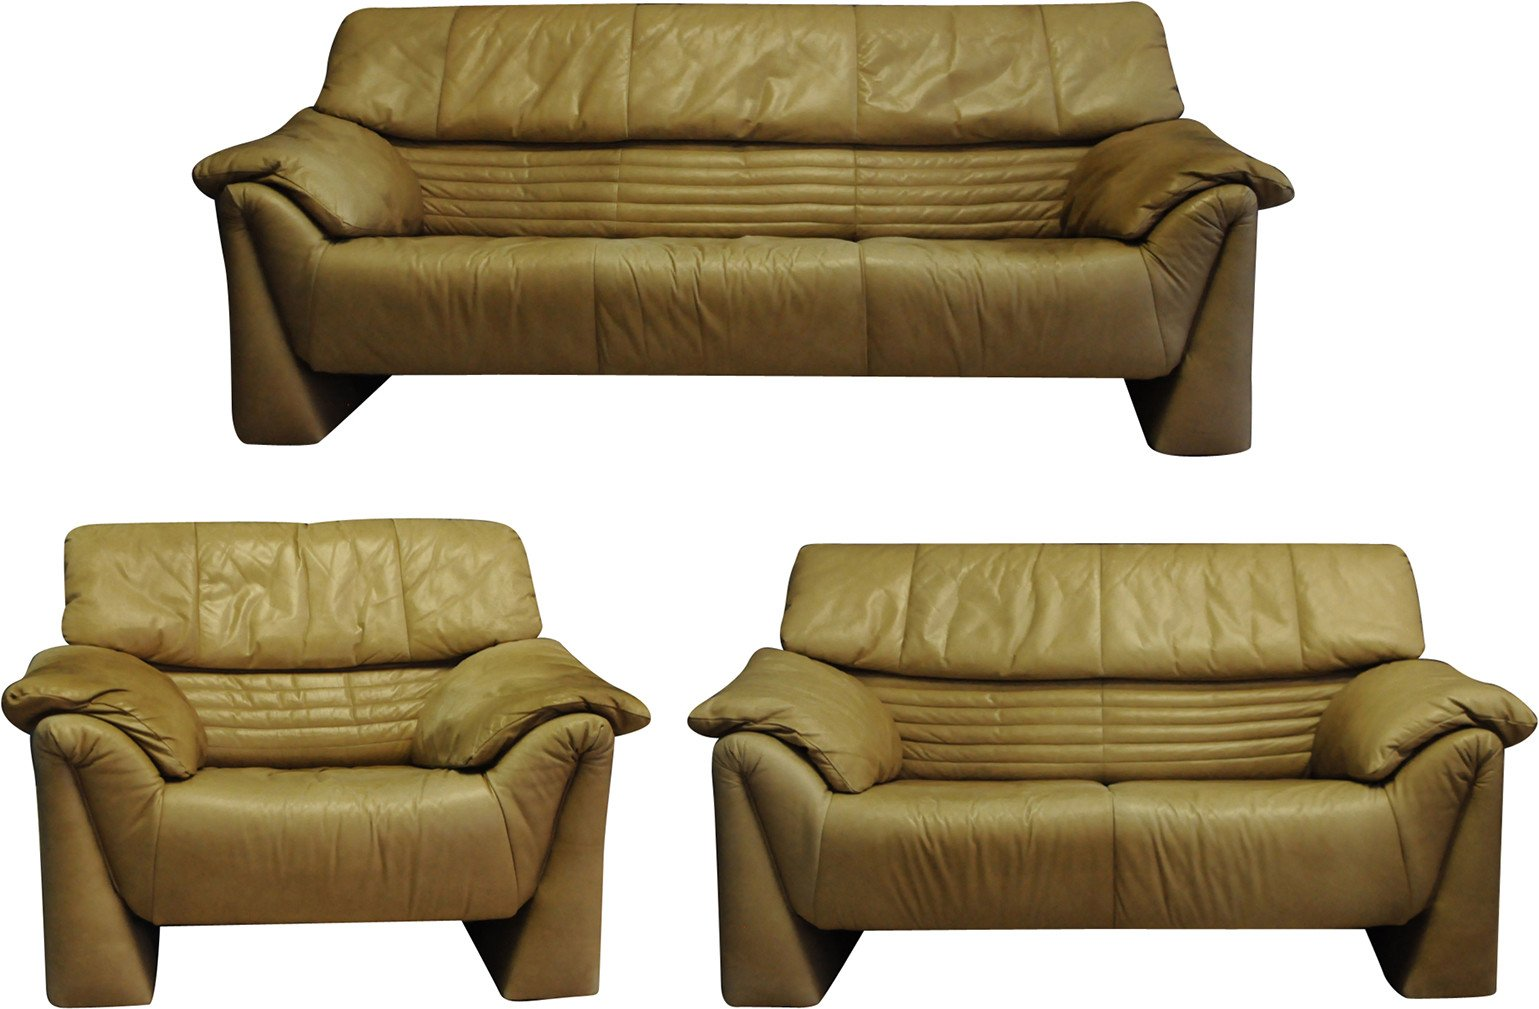 Set of Two Sofas and Armchair by V. Magistretti, Cassino, Italy, 1960s